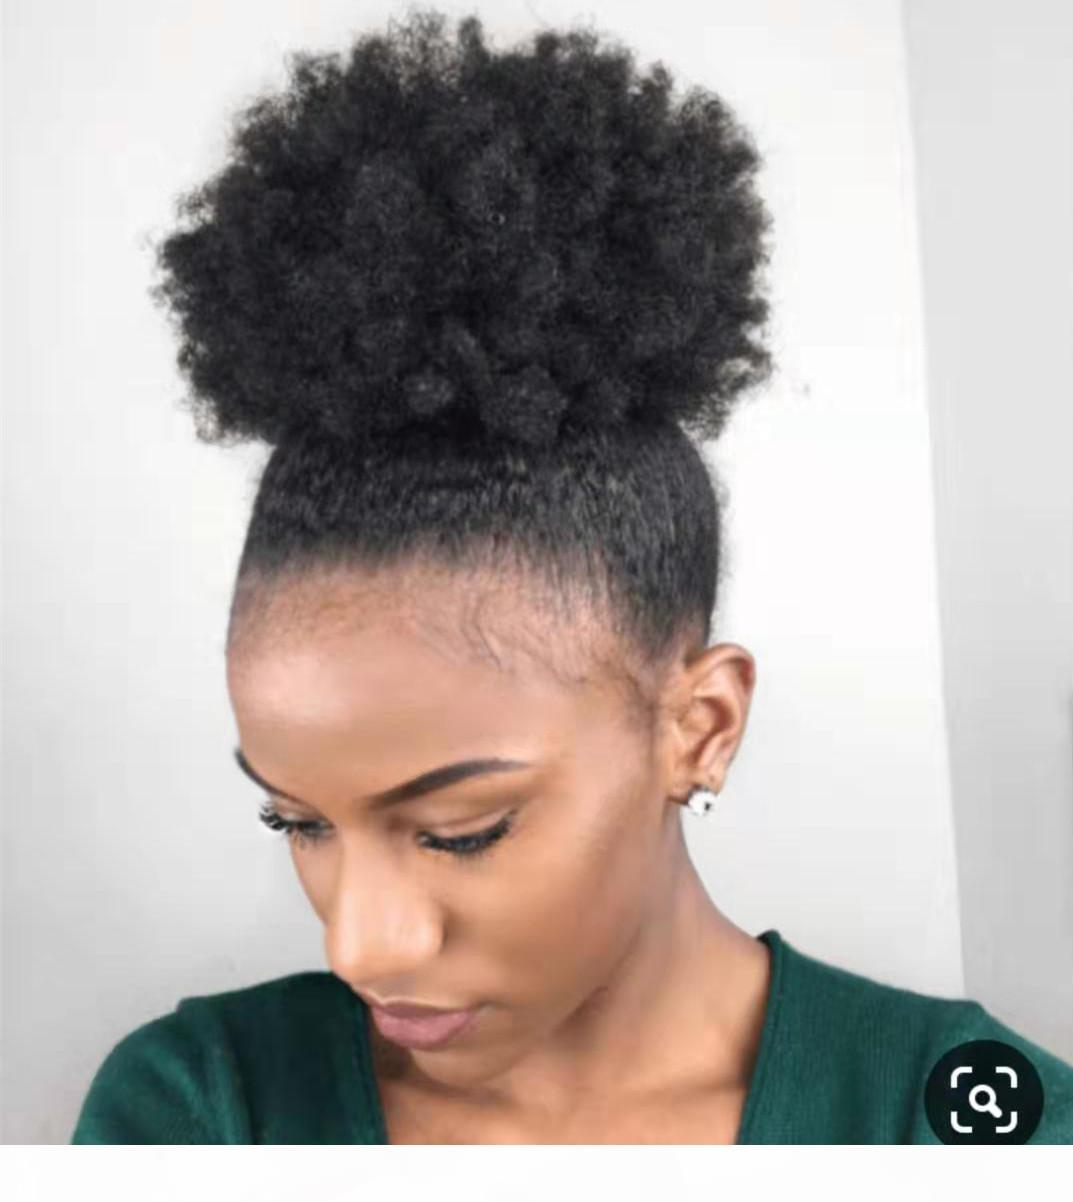 100 Human Natural Ponytail Extension African American Short Afro